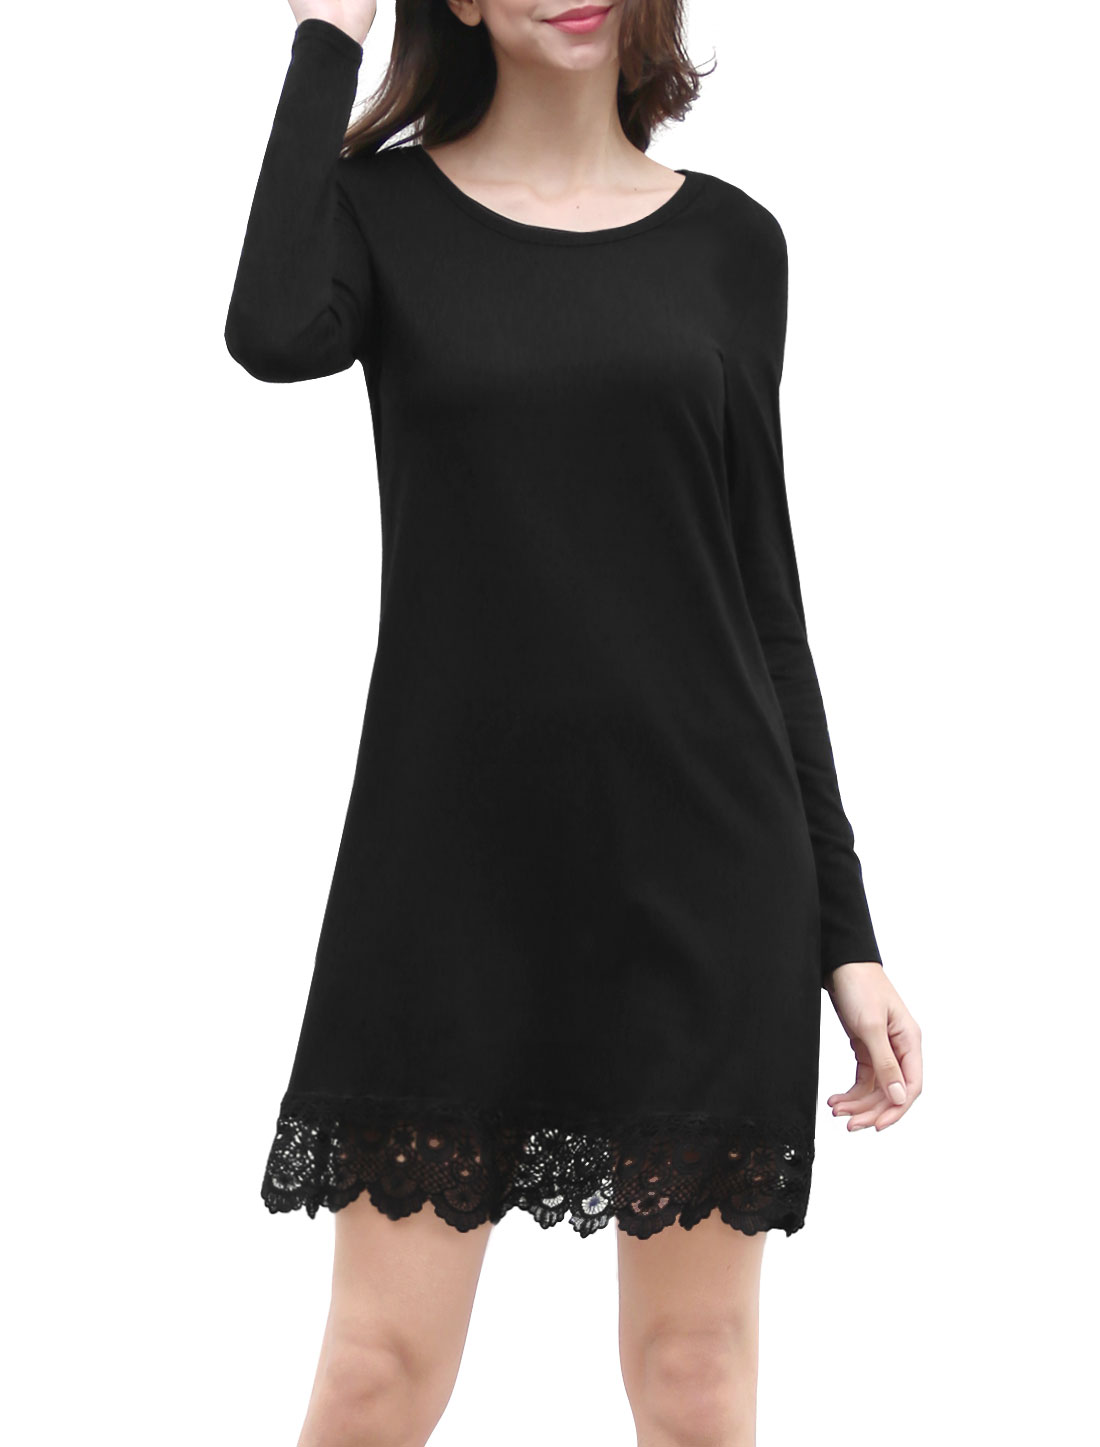 Women Long Sleeves Scalloped Crochet Hem Above Knee Dress Black L